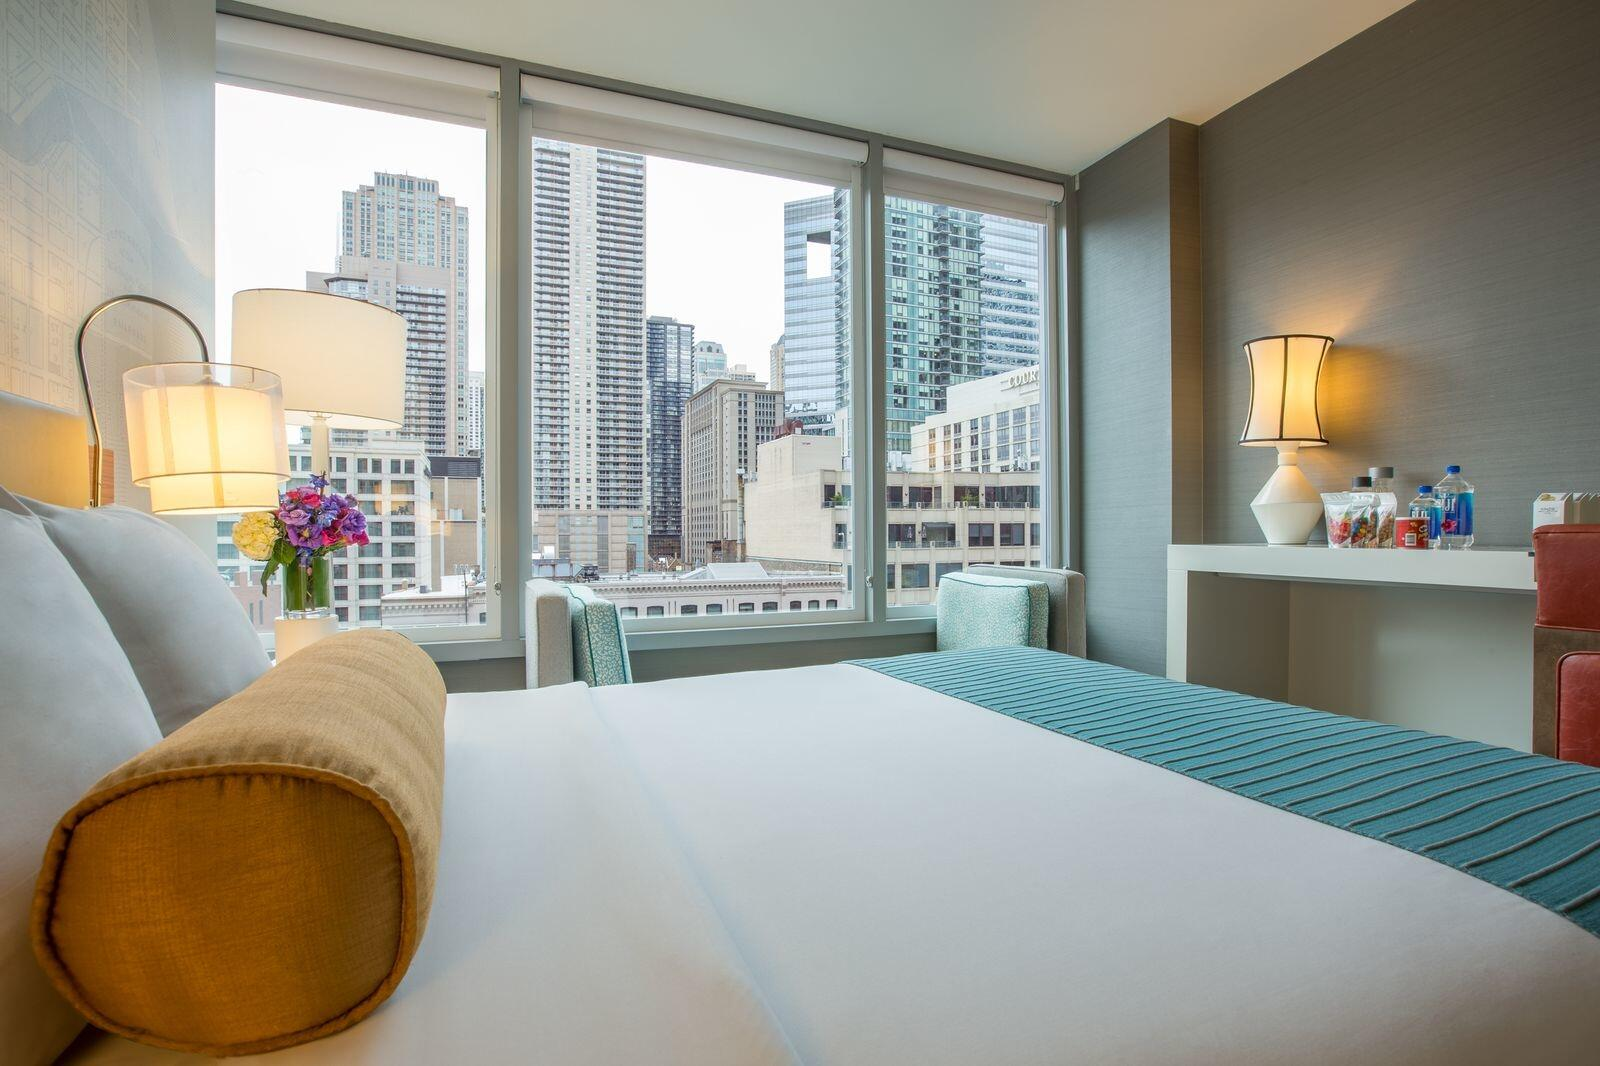 King Room with Downtown Chicago View